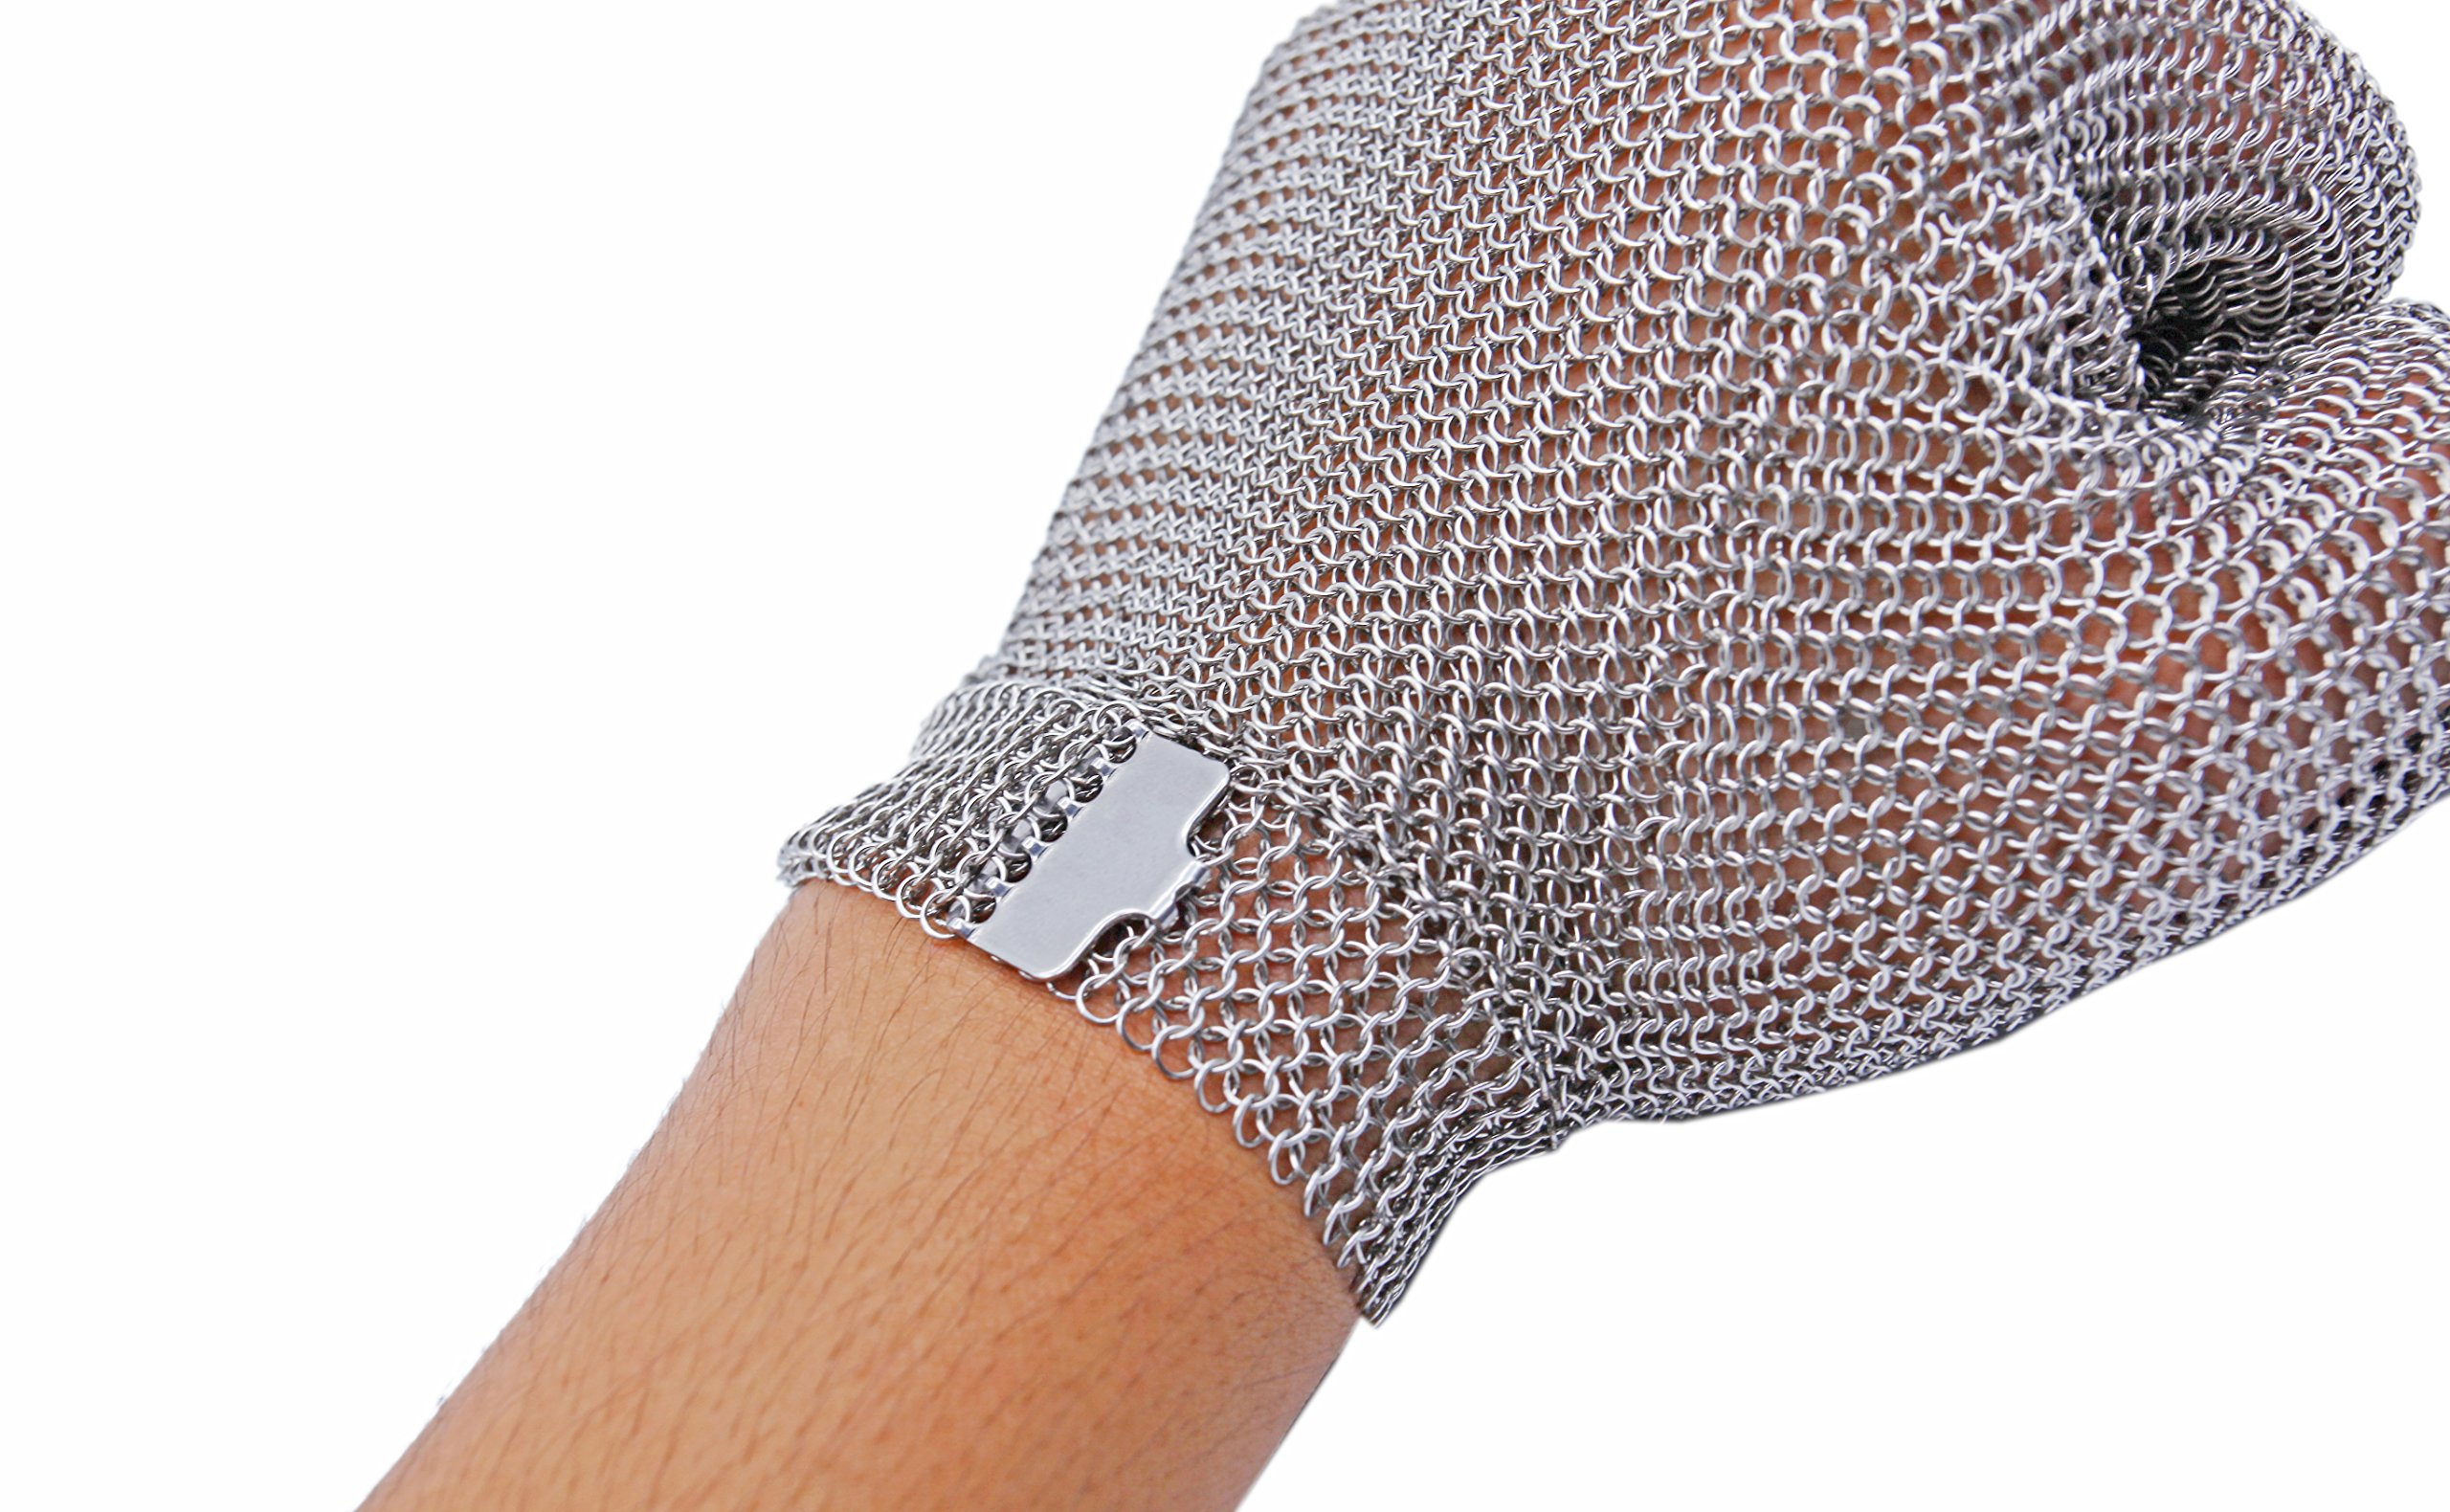 All Stainless Steel, No Fabric - Chainmail Mesh Butcher Glove - Sizes XXS to XL Available - ISO, FDA Compliant by 44Industry (Image #4)